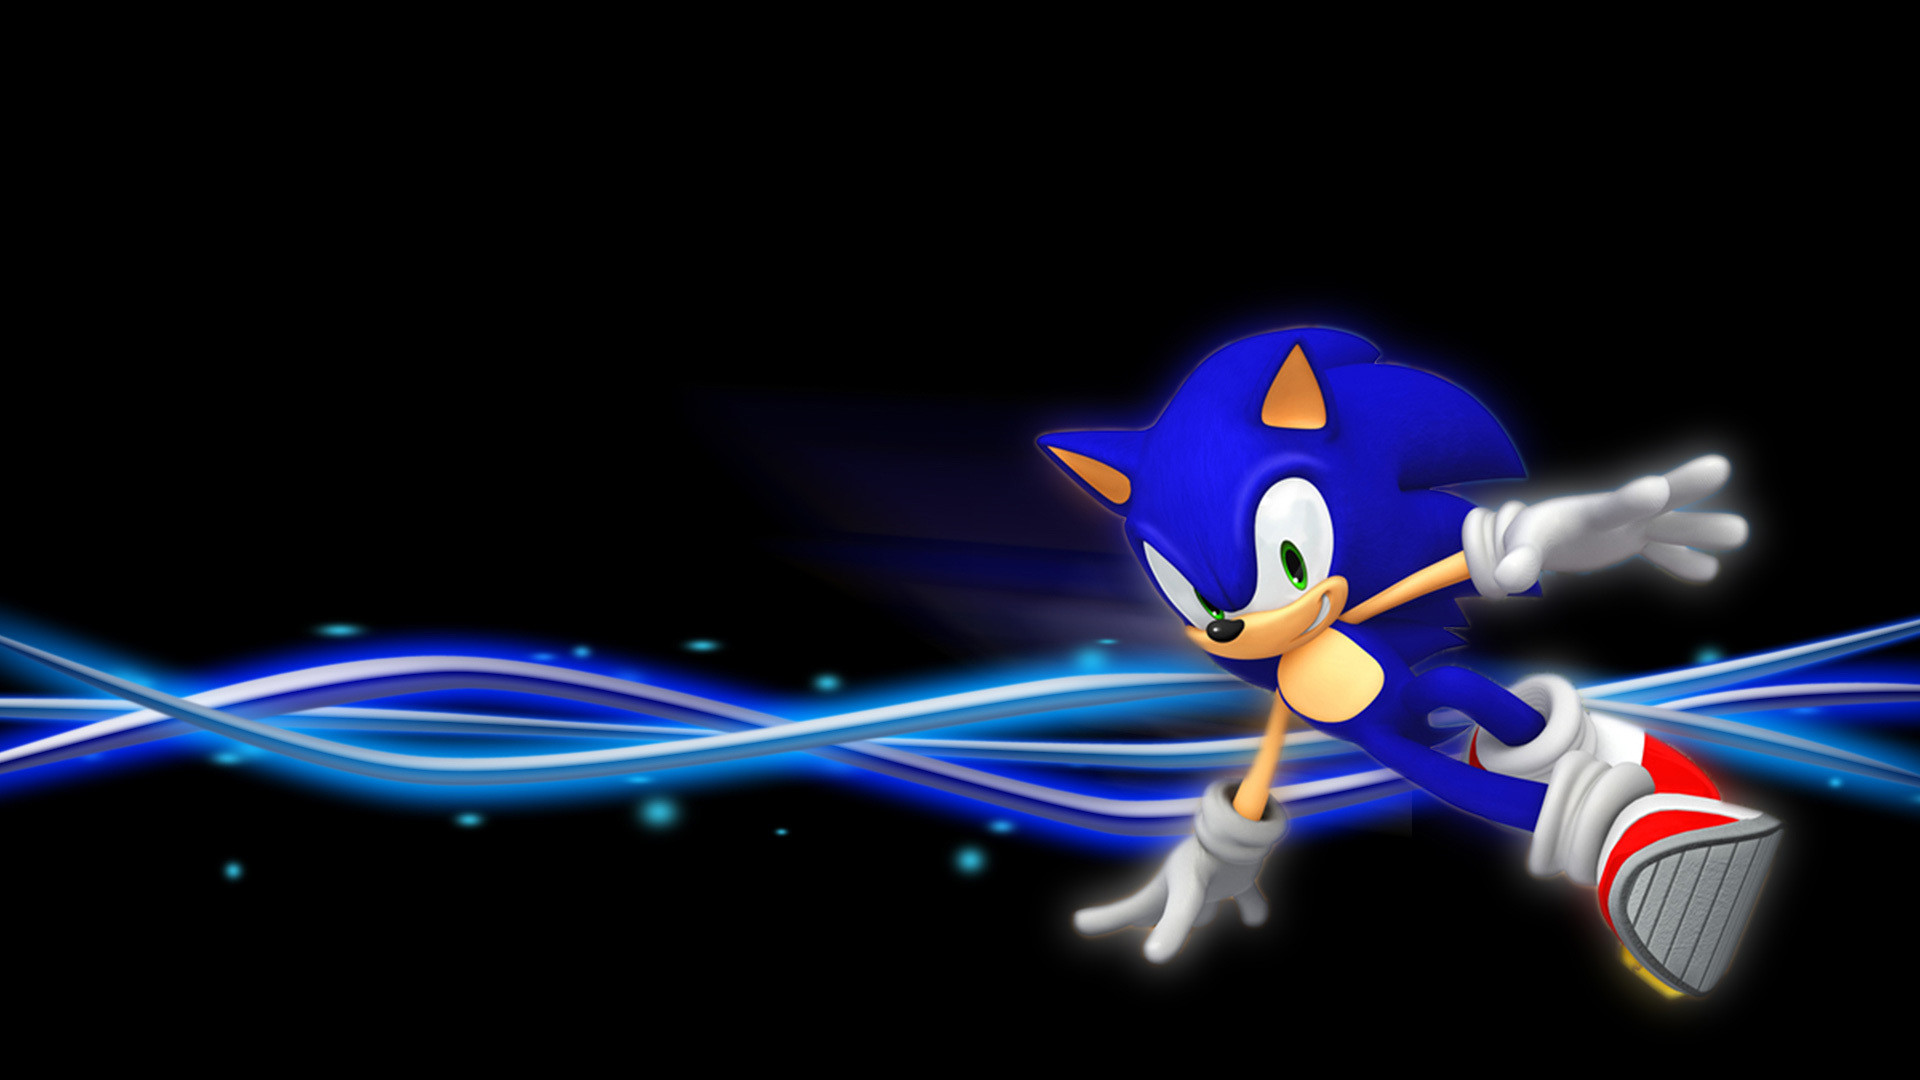 247 Sonic The Hedgehog HD Wallpapers | Backgrounds – Wallpaper Abyss |  Images Wallpapers | Pinterest | Wallpaper backgrounds and Wallpaper